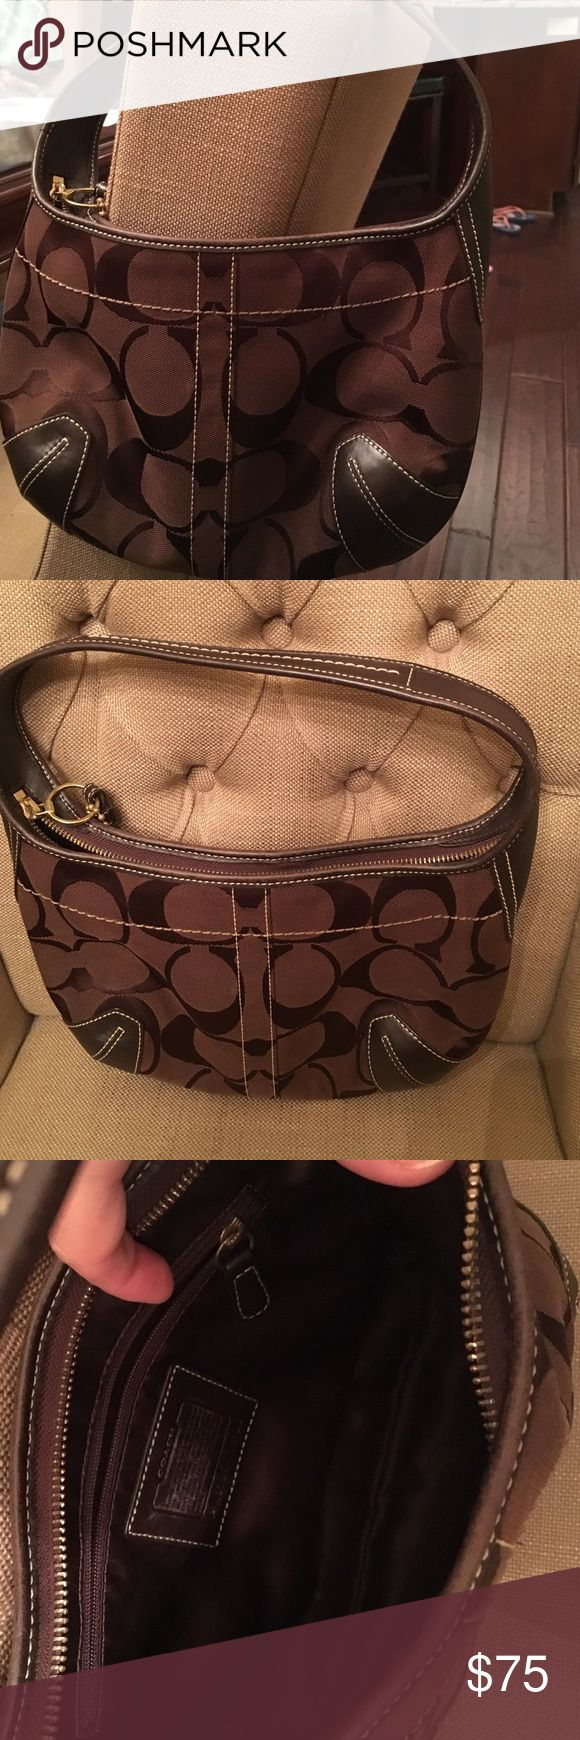 Coach Brown Hobo Purse Excellent condition!!! Used once. Small brown Coach Hobo purse. No rips, tears, or marks. Coach Bags Shoulder Bags